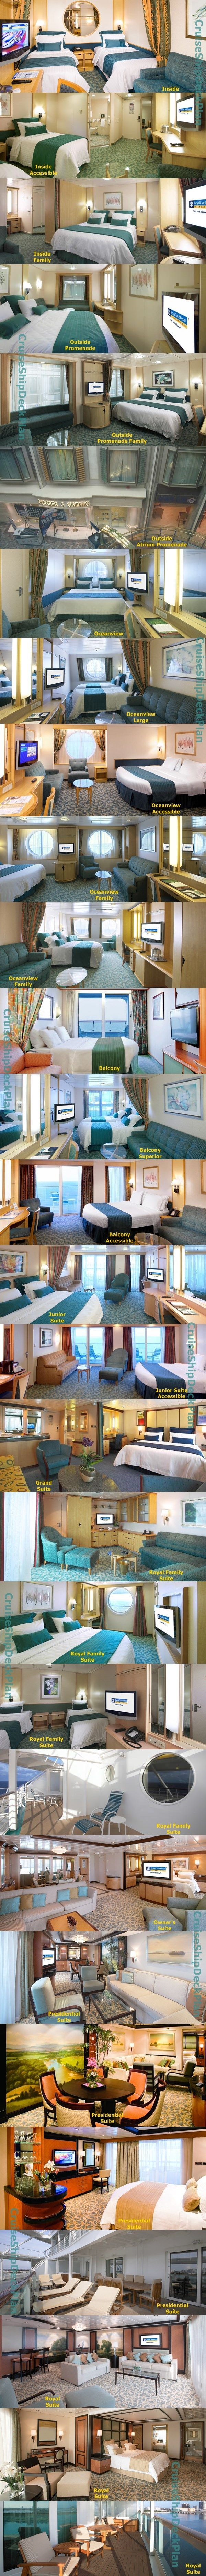 Royal Caribbean Freedom of the Seas cabins and suites photos